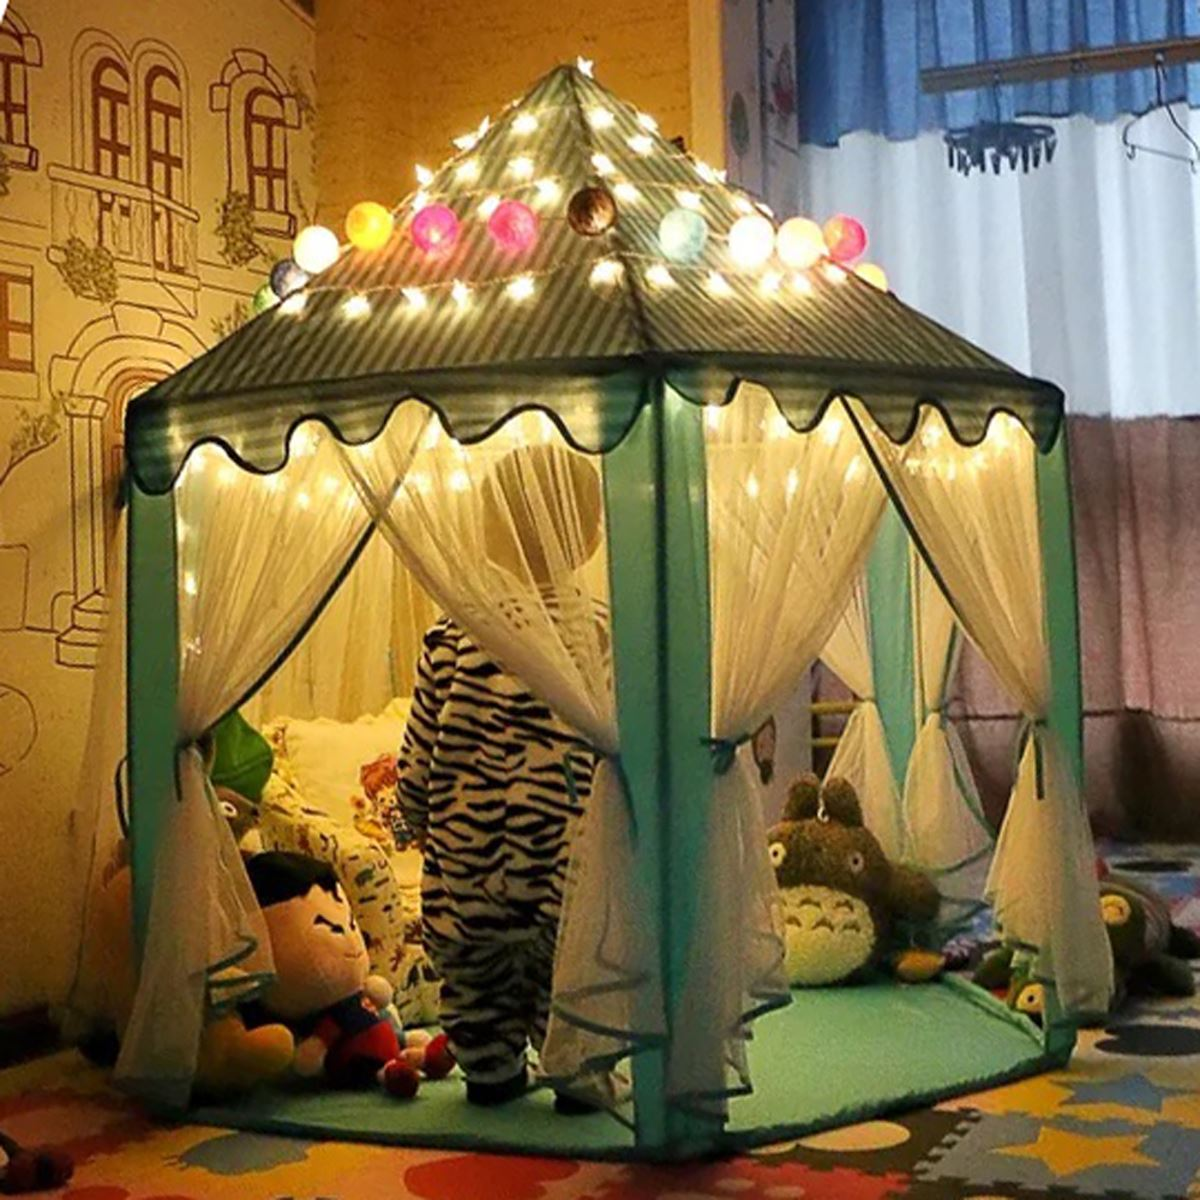 Portable Princess Castle Play Tent With Led Light Children Activity Fairy House kids Funny Indoor Outdoor Playhouse playing Toy portable princess castle play tent with led light children activity fairy house kids funny indoor outdoor playhouse playing toy